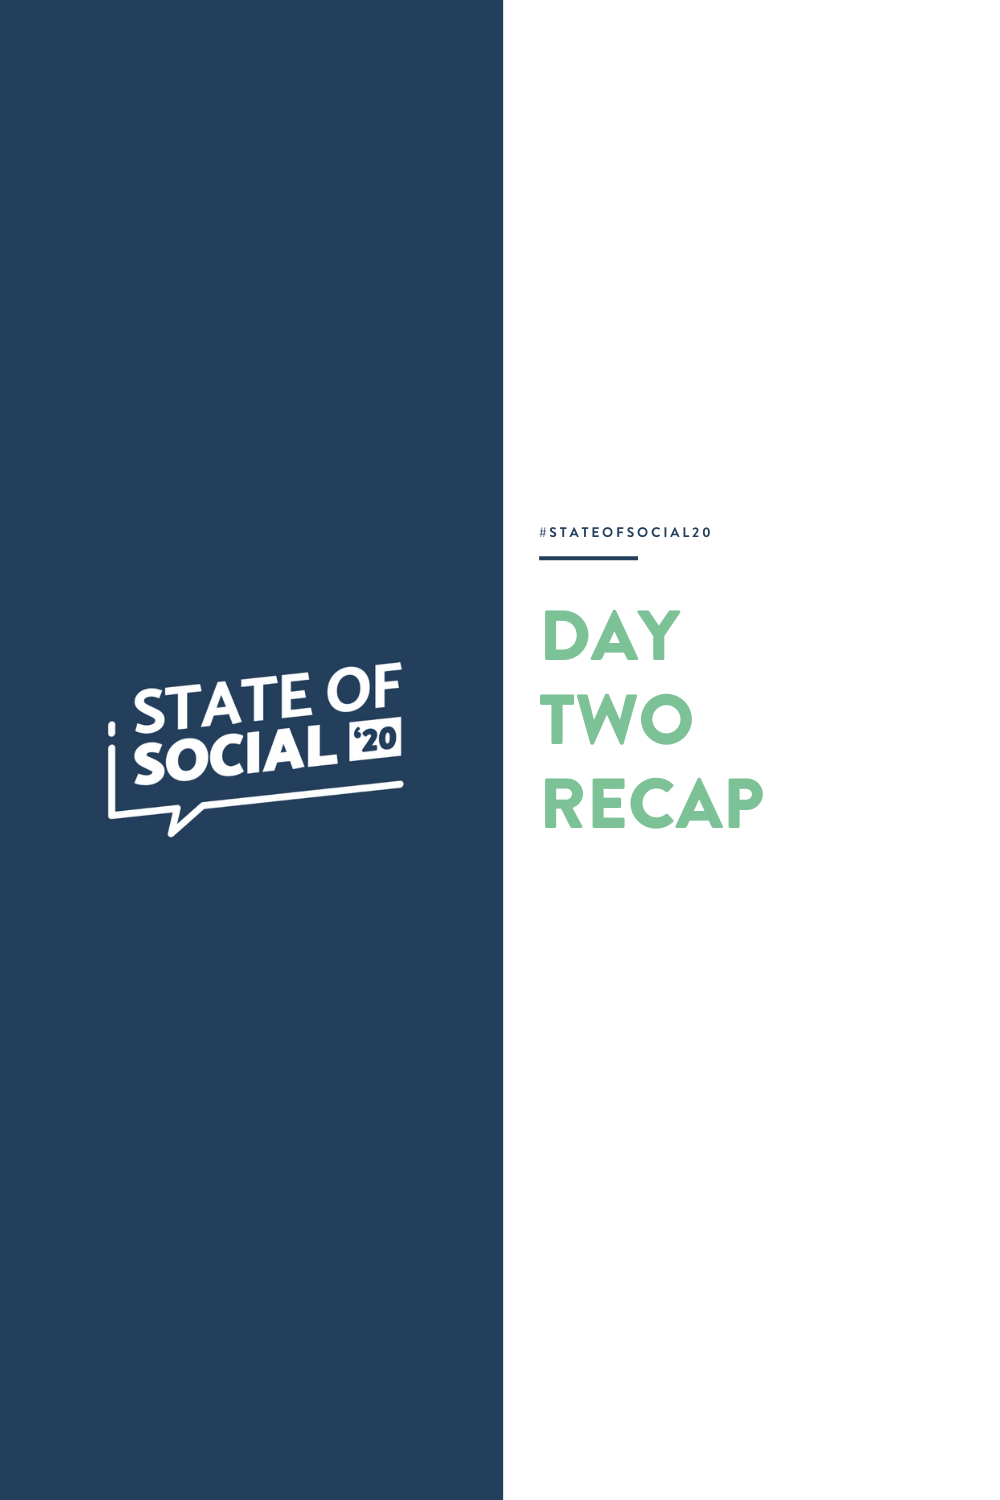 State of Social '20: Day 2 Wrap